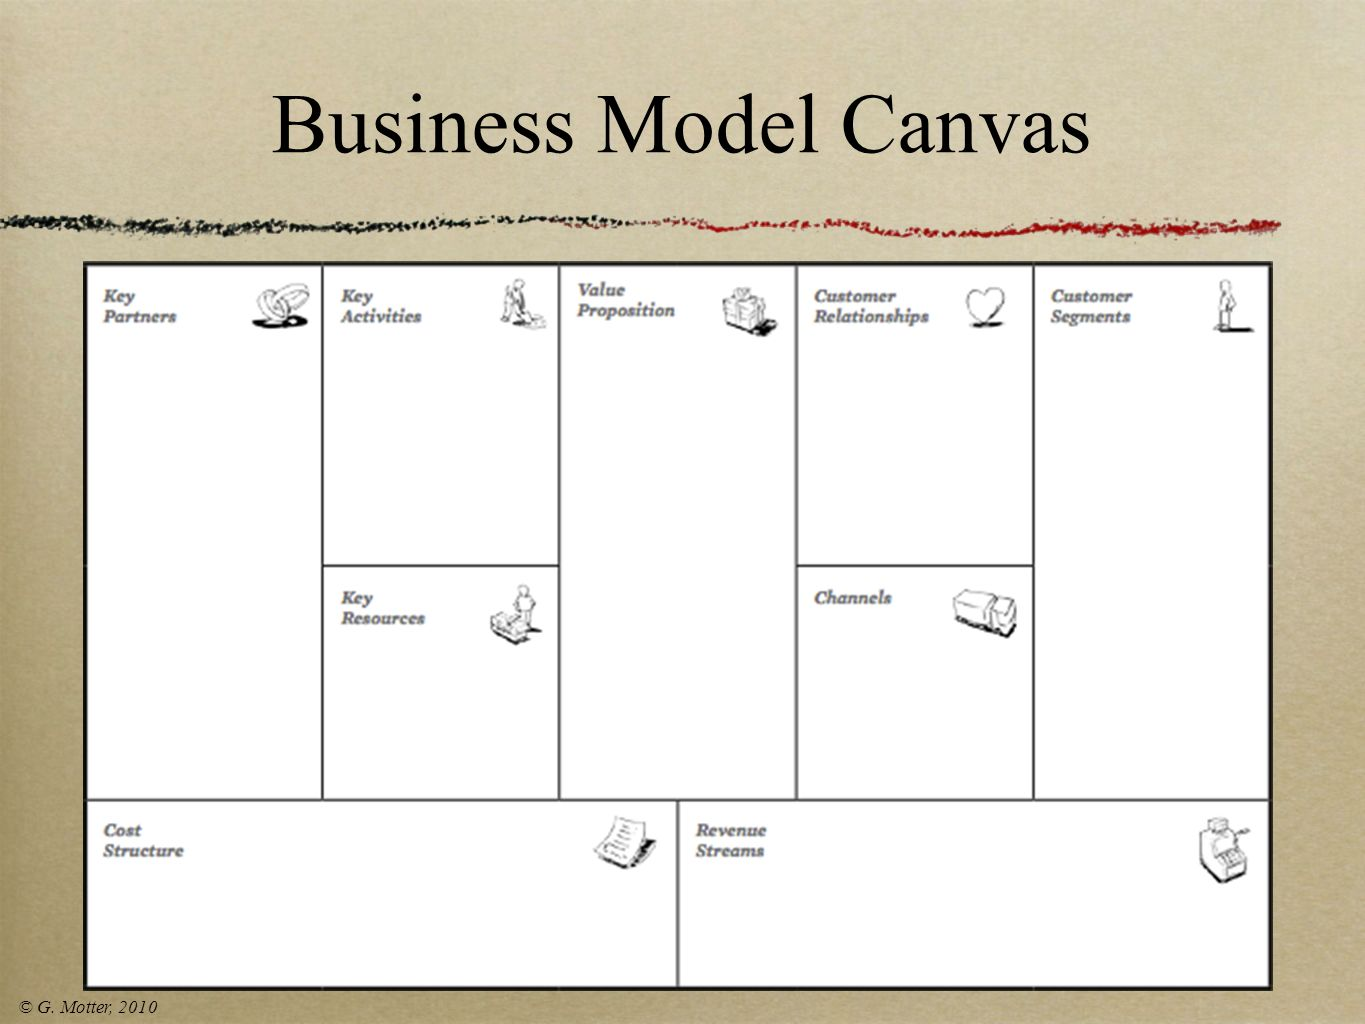 Business Model Canvas © G. Motter, 2010